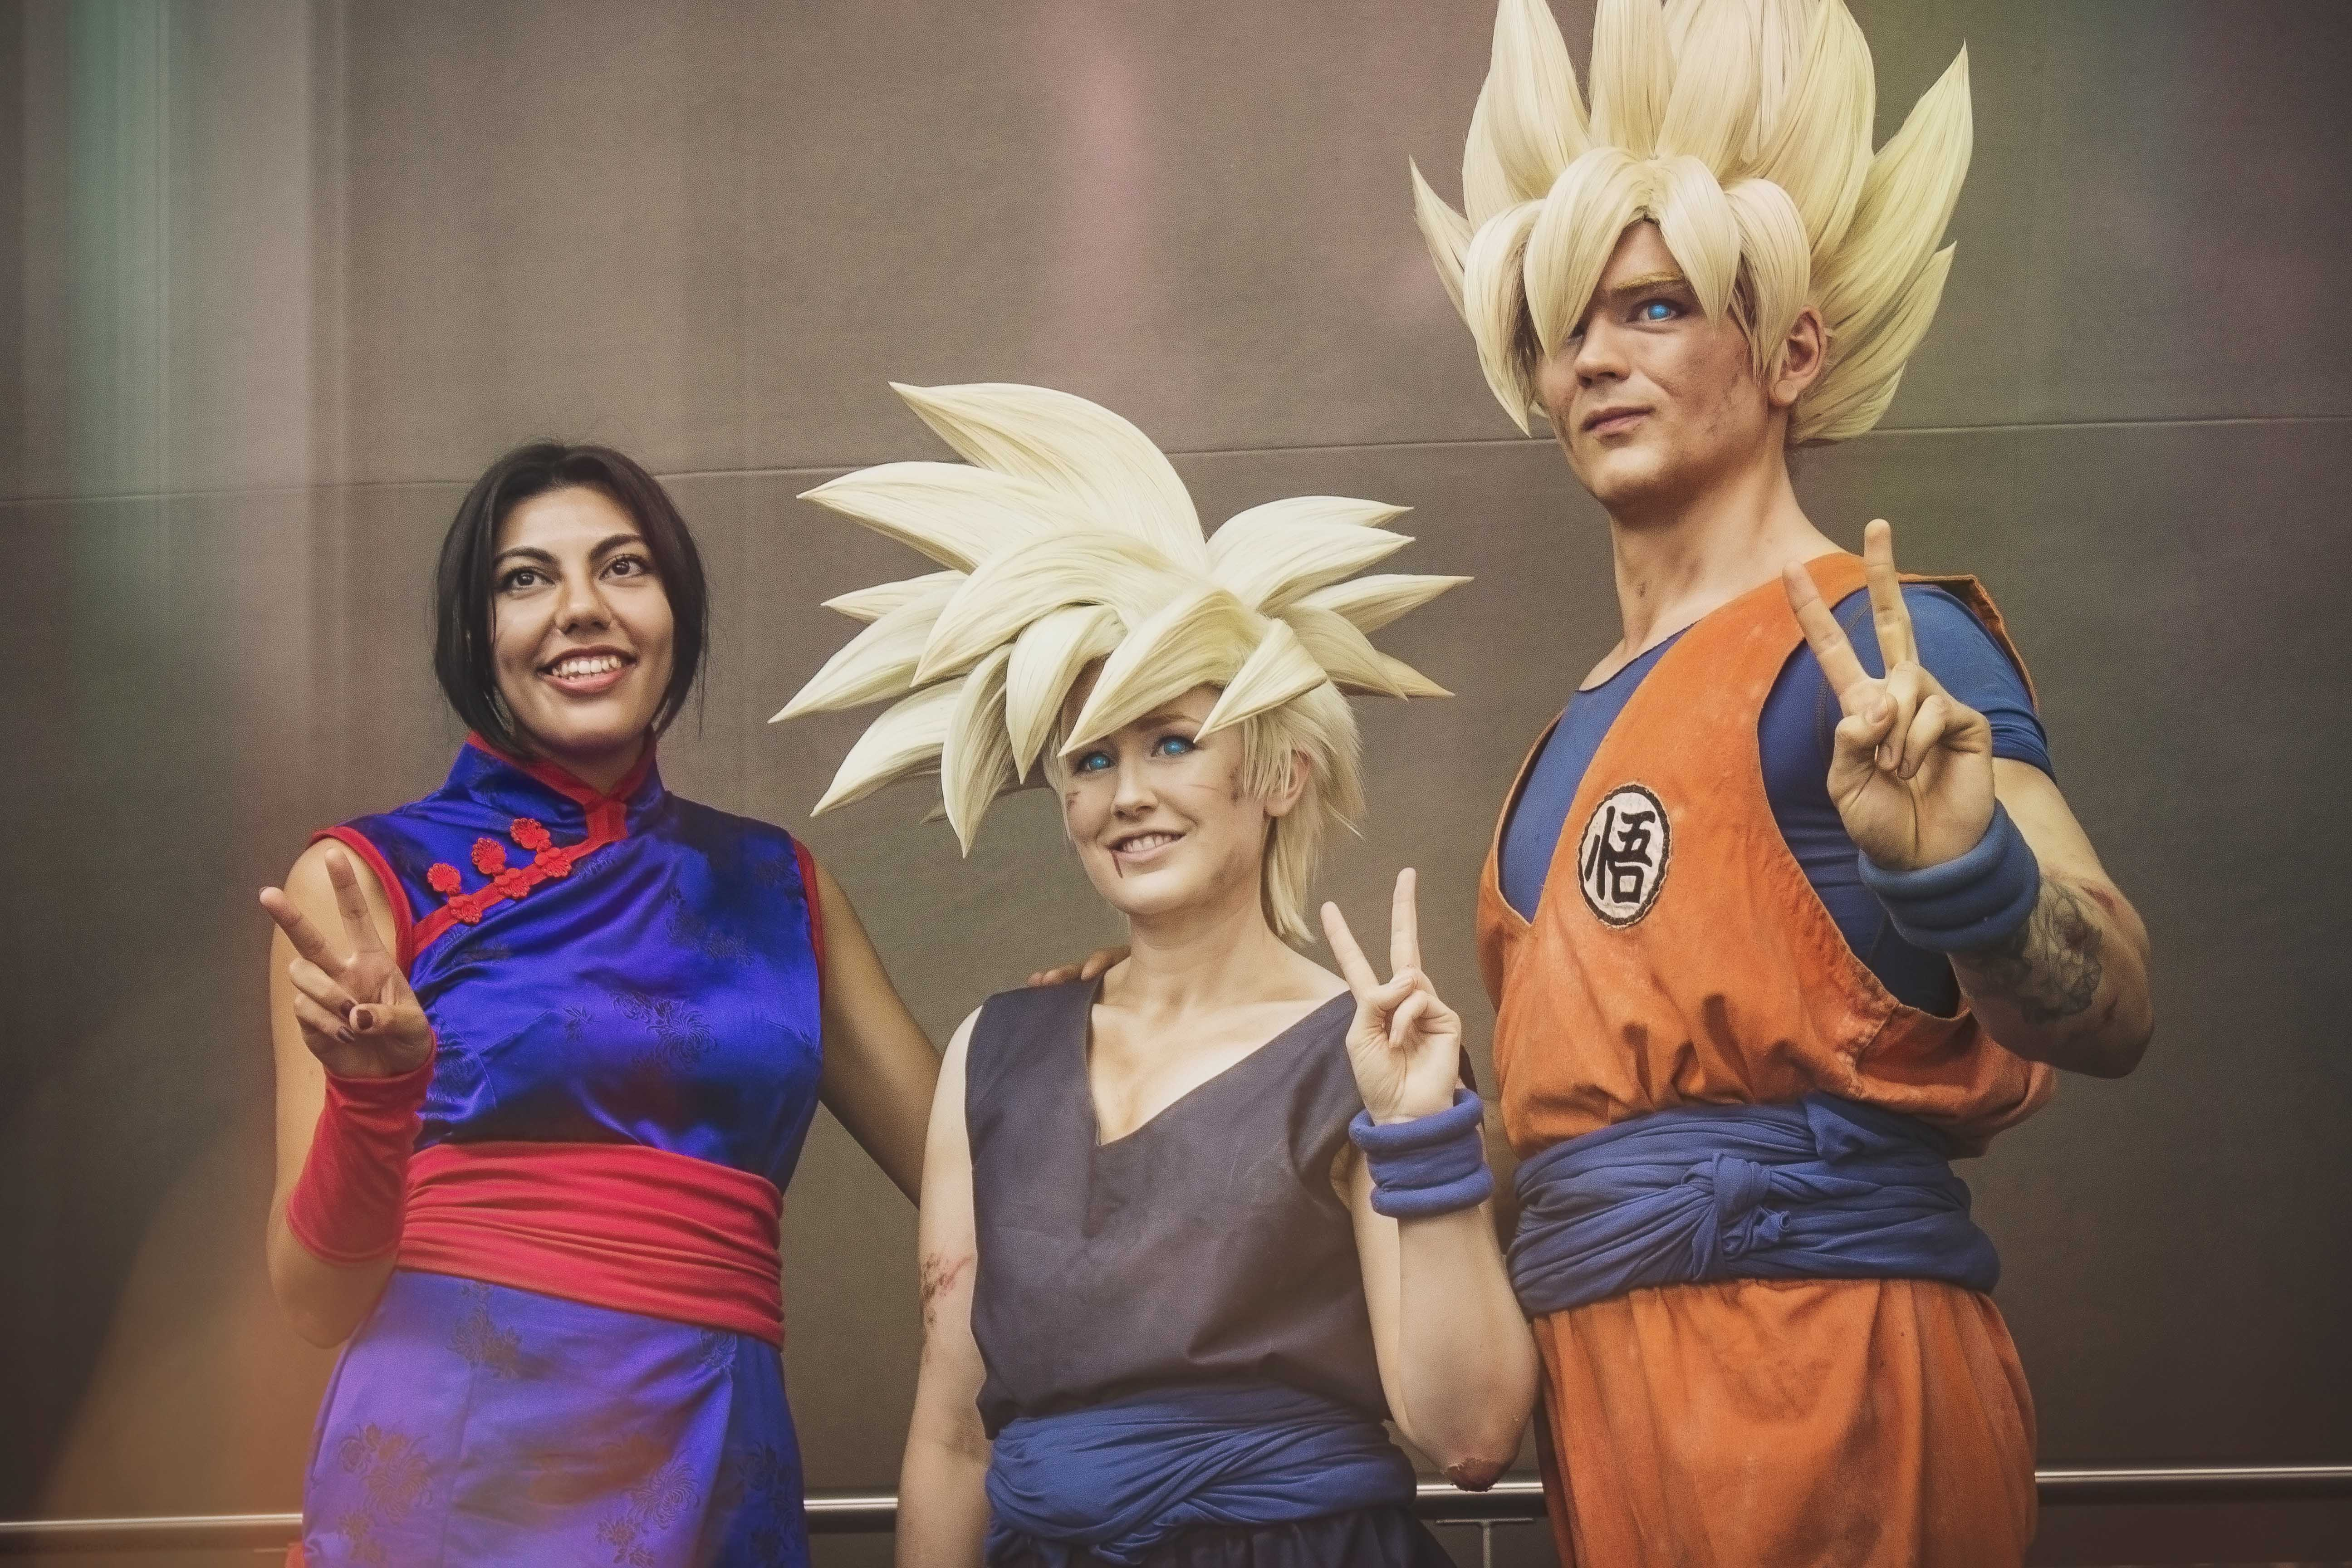 Son Family Cosplay! Gohan, Goku, and Chi-Chi from DragonBall Z